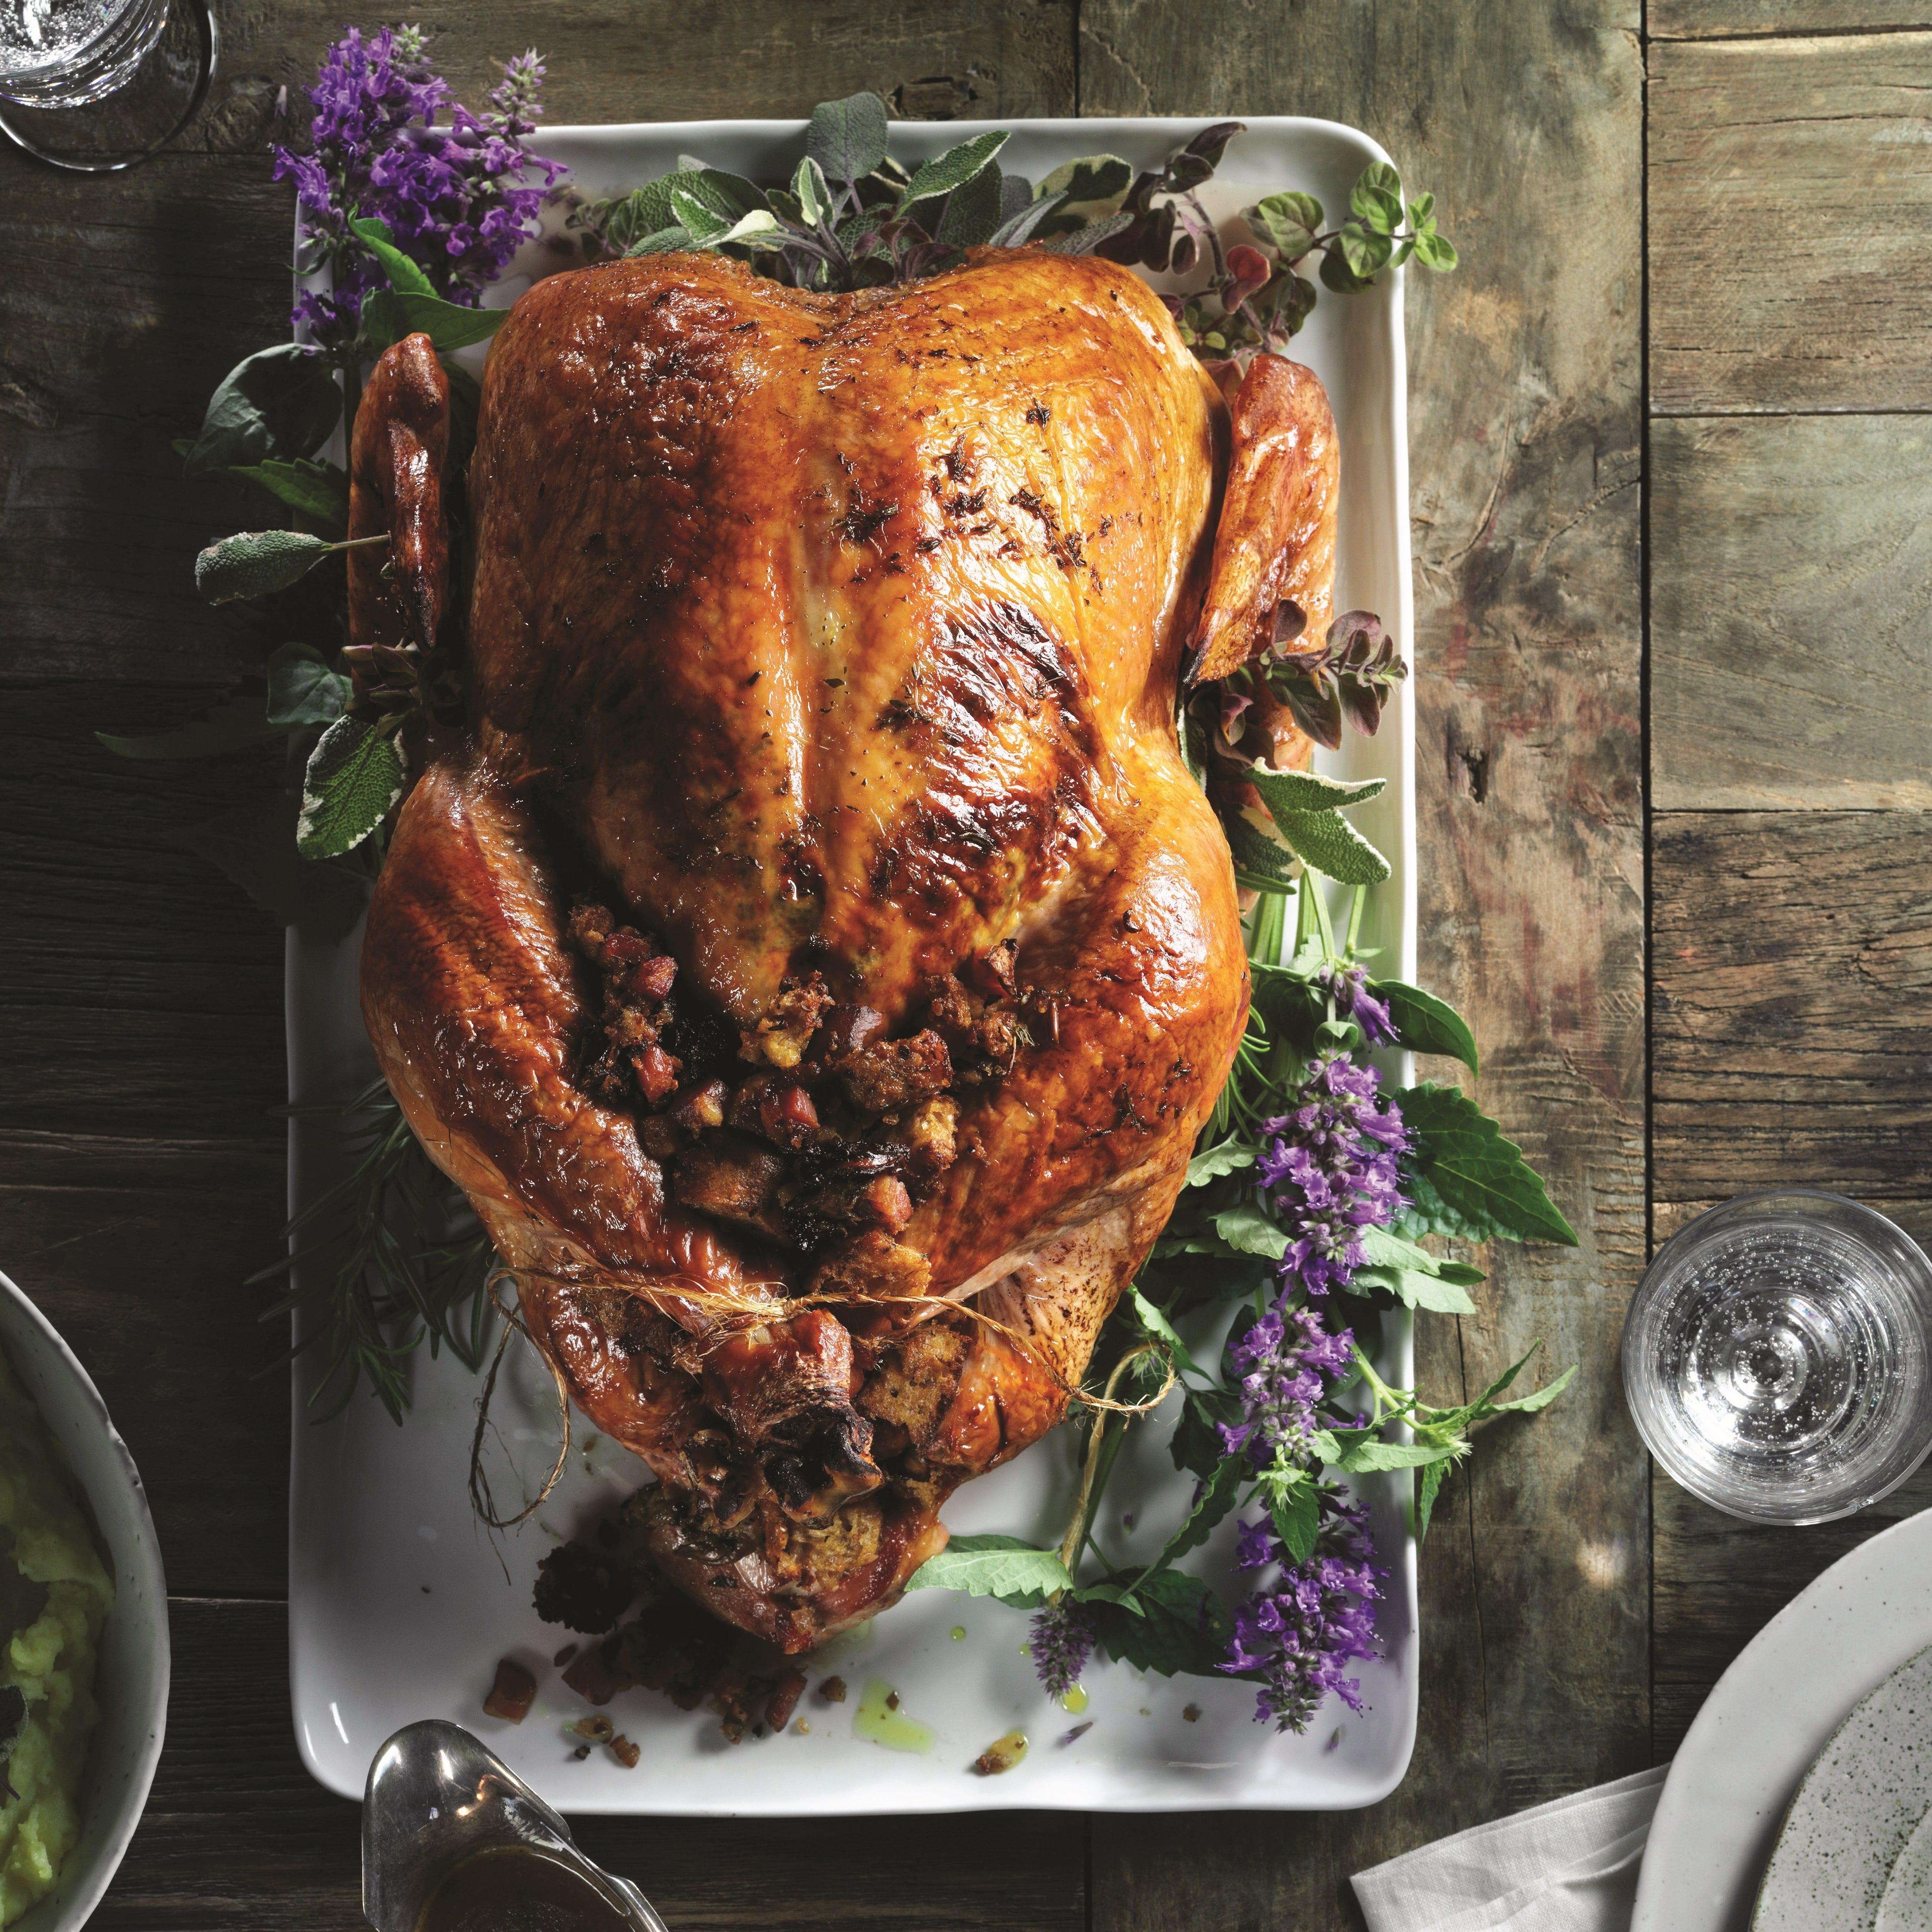 Thanksgiving recipe: How to have a weed-infused dinner, without getting too high